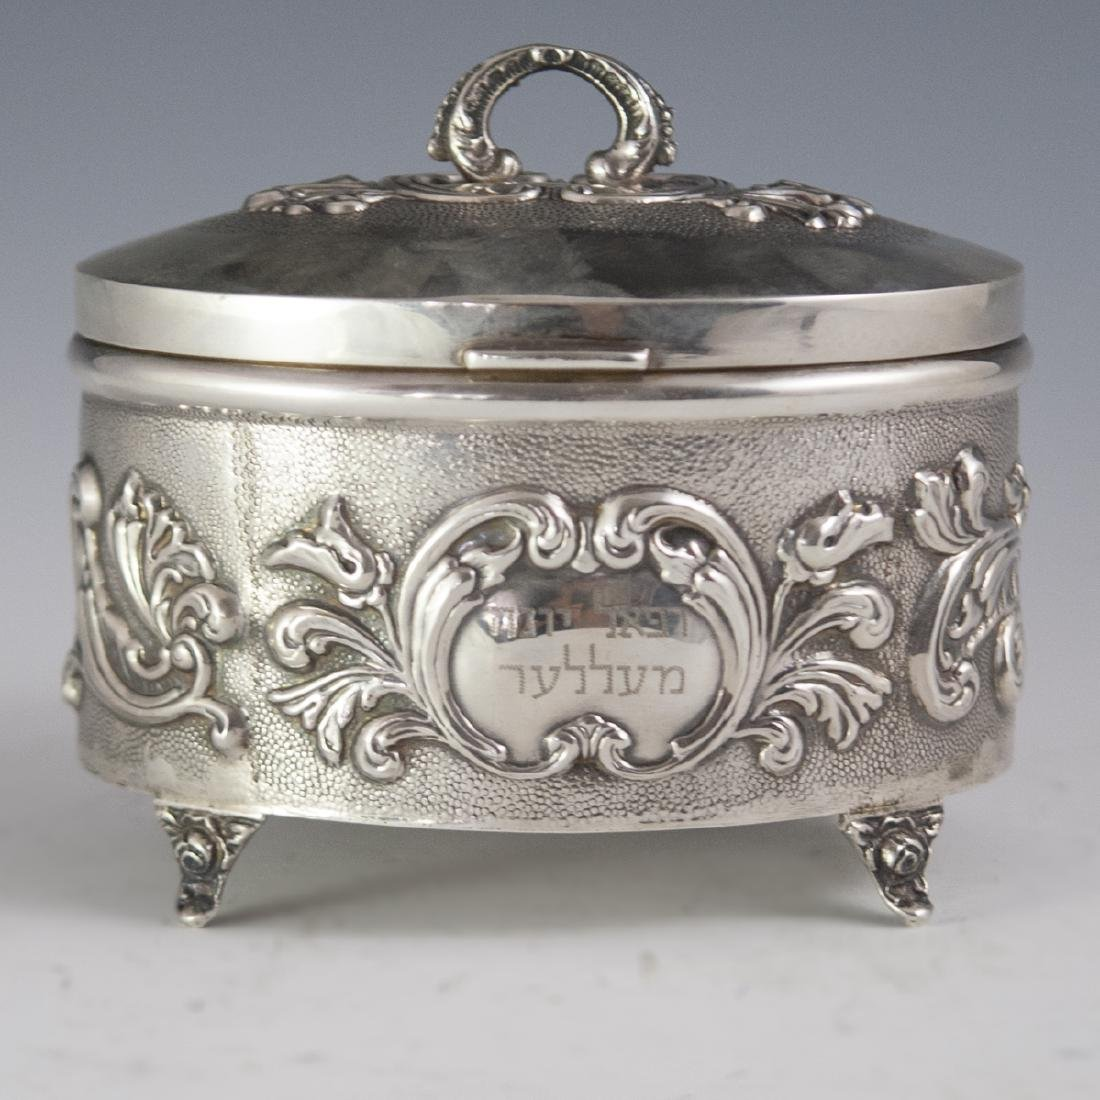 Israeli Sterling Repousse Box